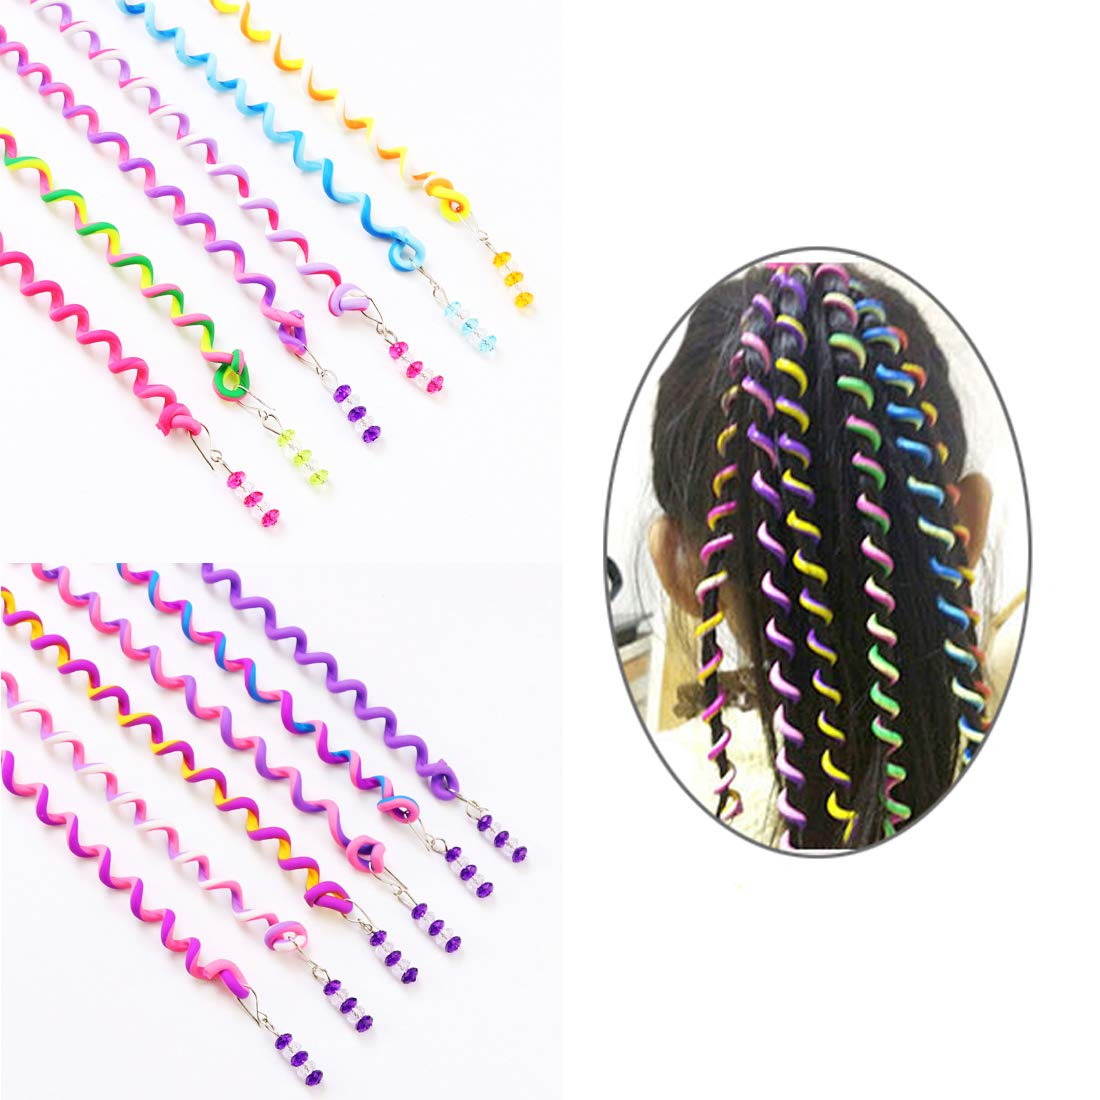 ThEast Girls Hair Styling Twister Clip, Women Hair Braider DIY Tool Accessories, Hair beads for braids for girls 12PCS (B)